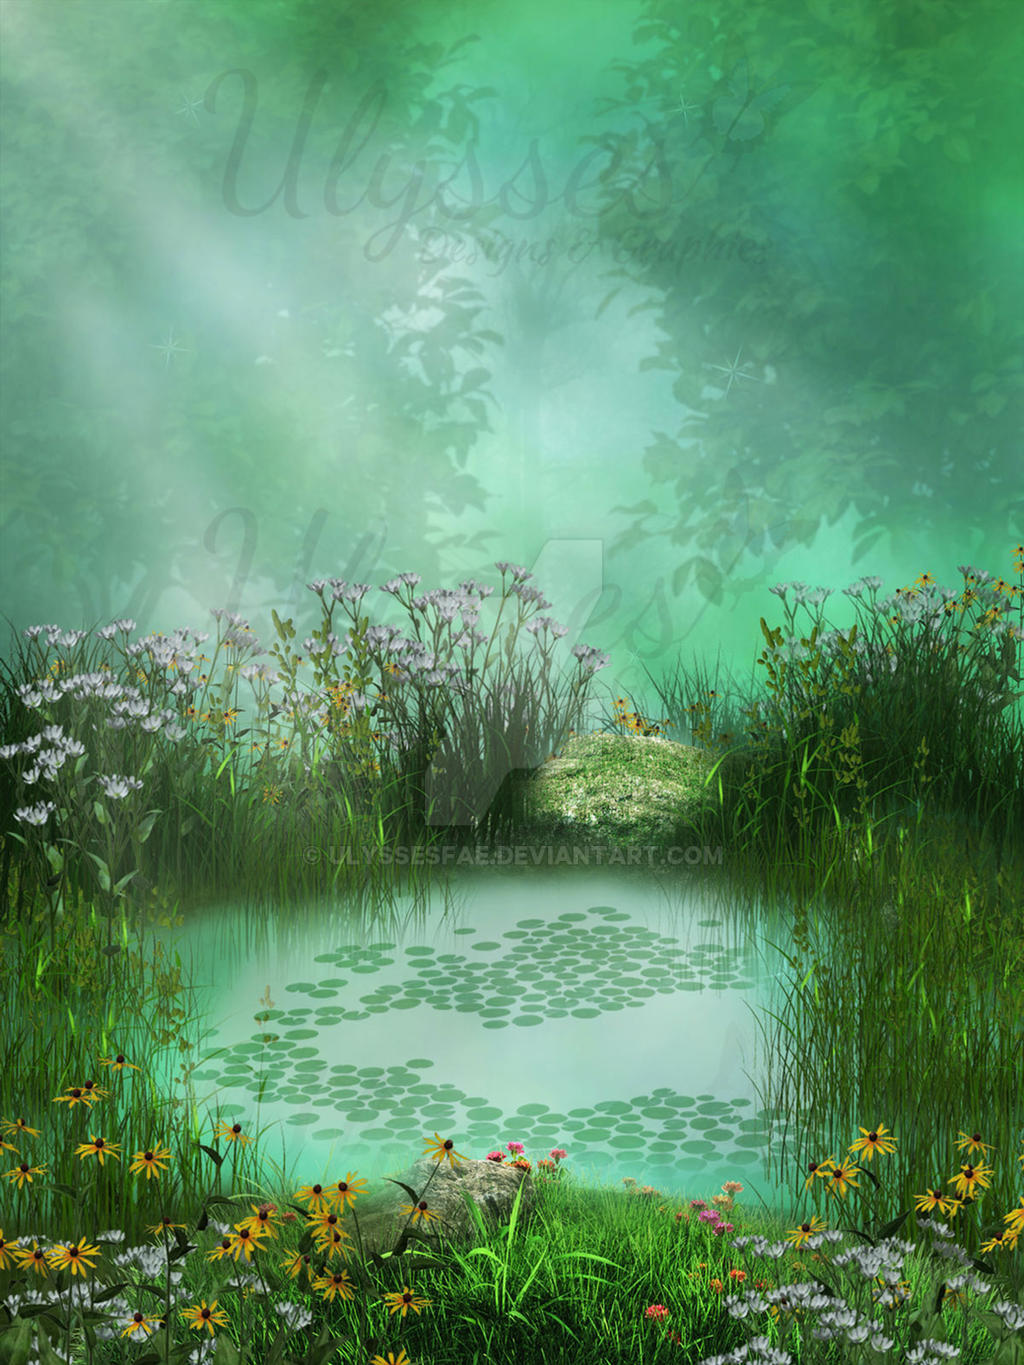 Magical Pond By Ulyssesfae On Deviantart